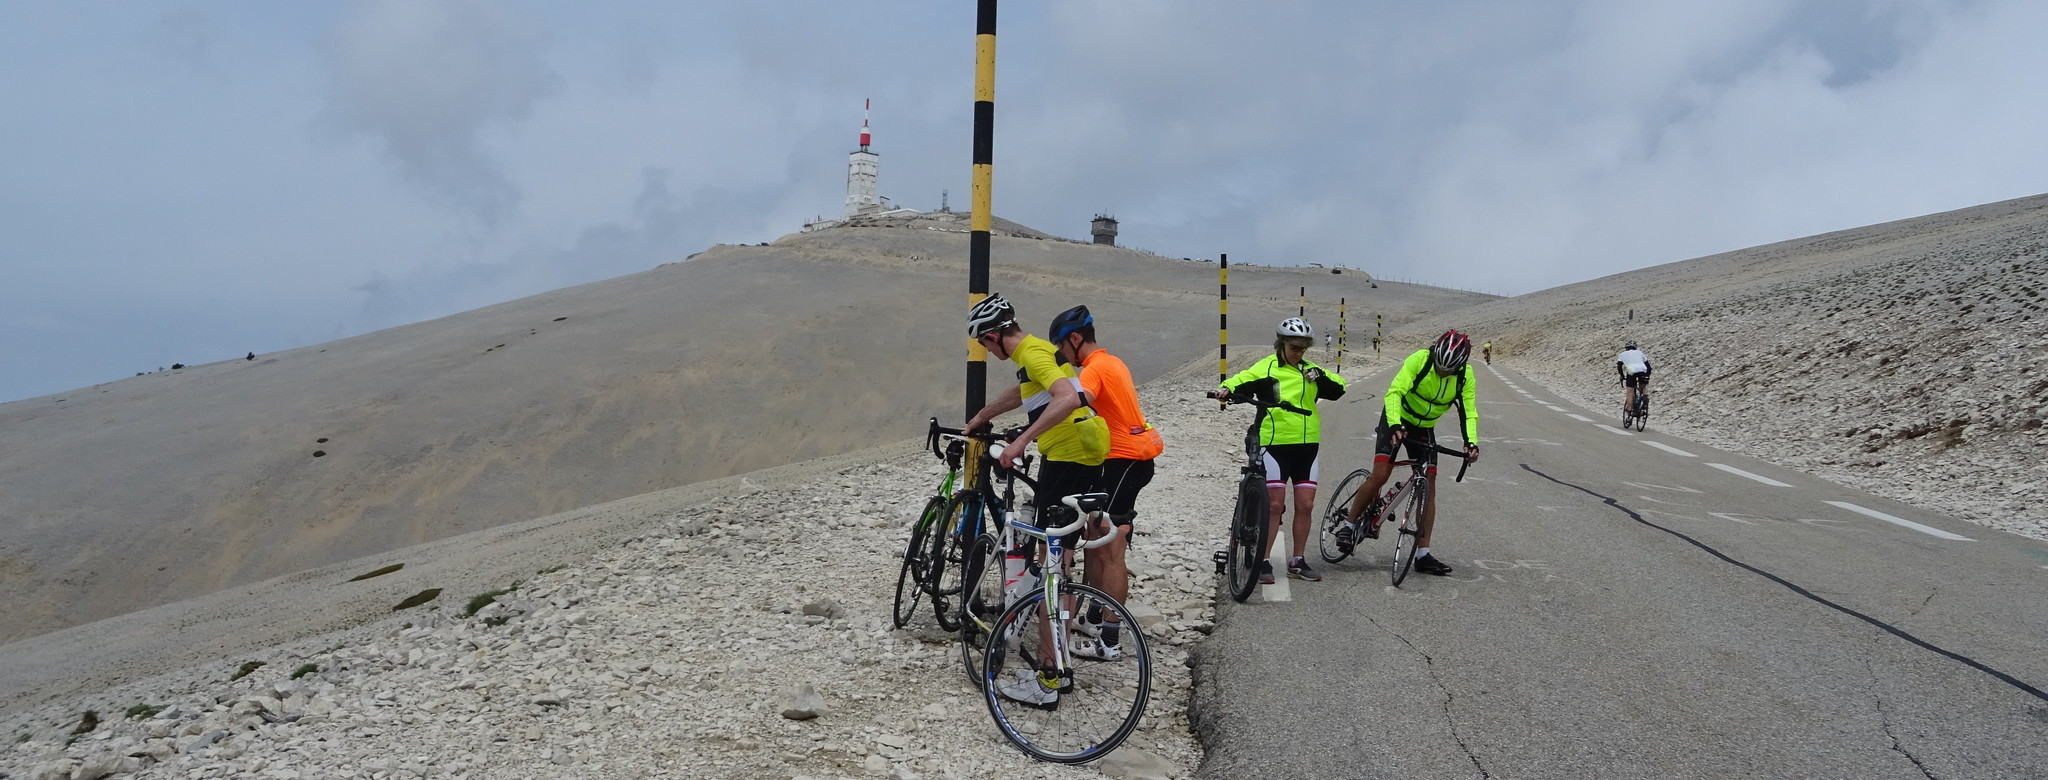 Trubel am Mont Ventoux.